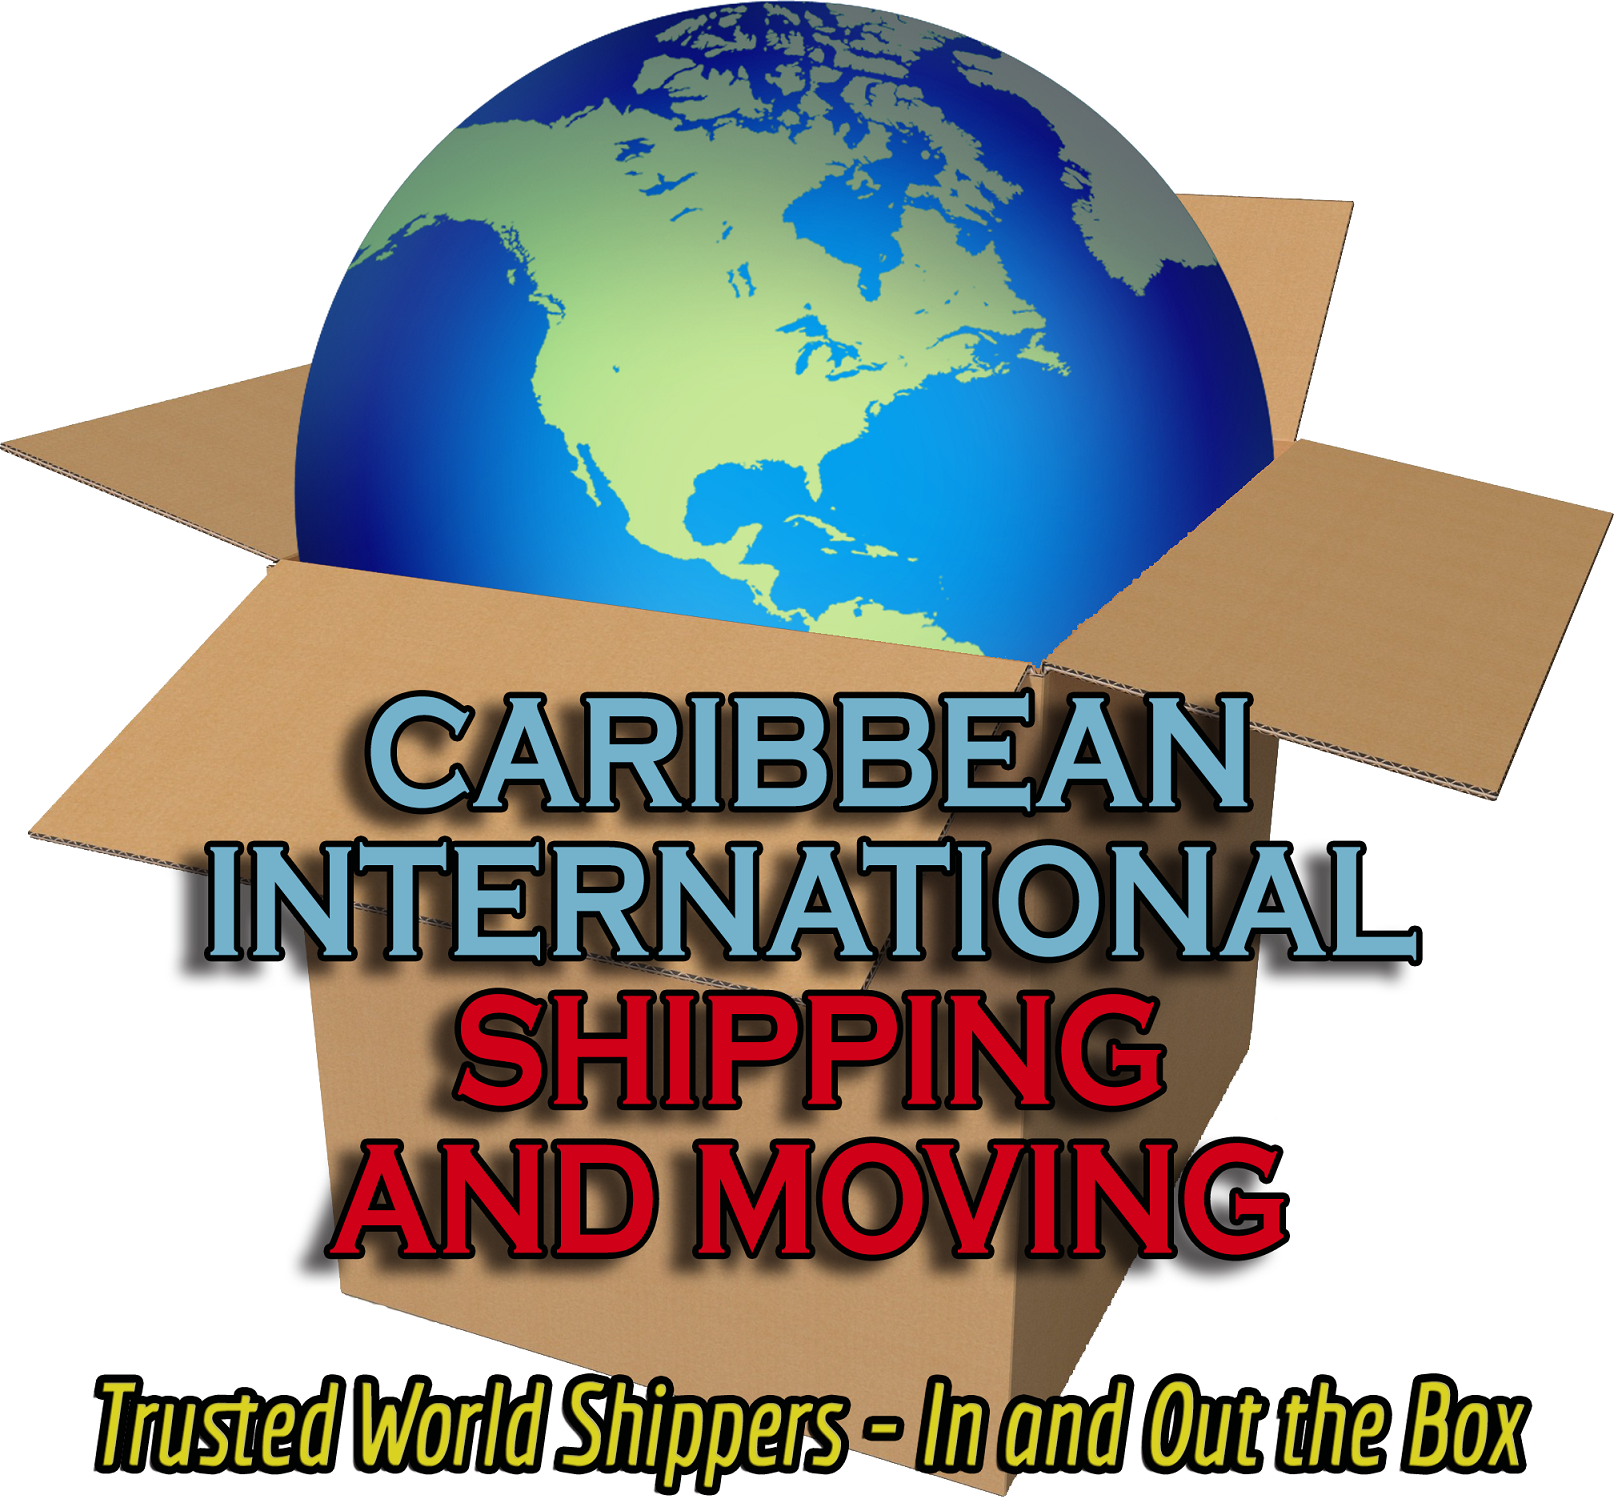 Caribbean International Shipping and Moving, Inc.